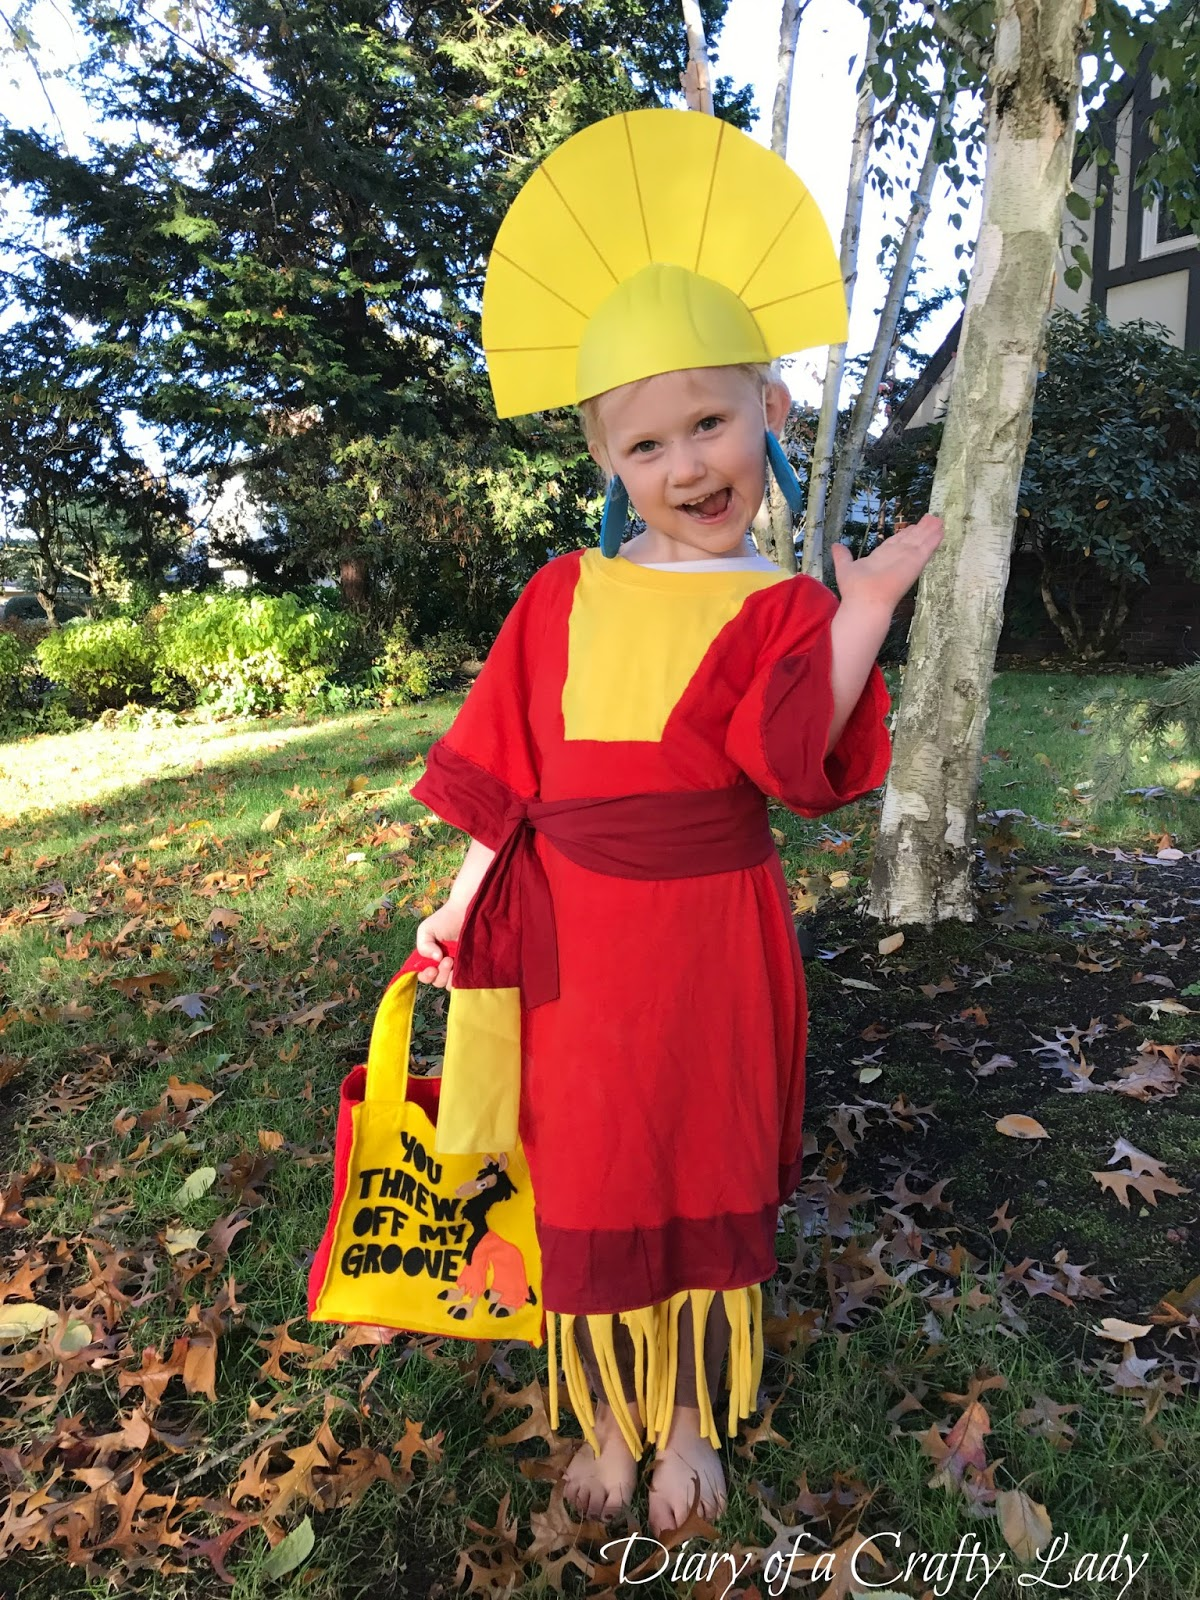 our sassy 4 year old was emperor kuzco and she really pulled it off no touchy was her favorite phrase particularly when referring to her halloween